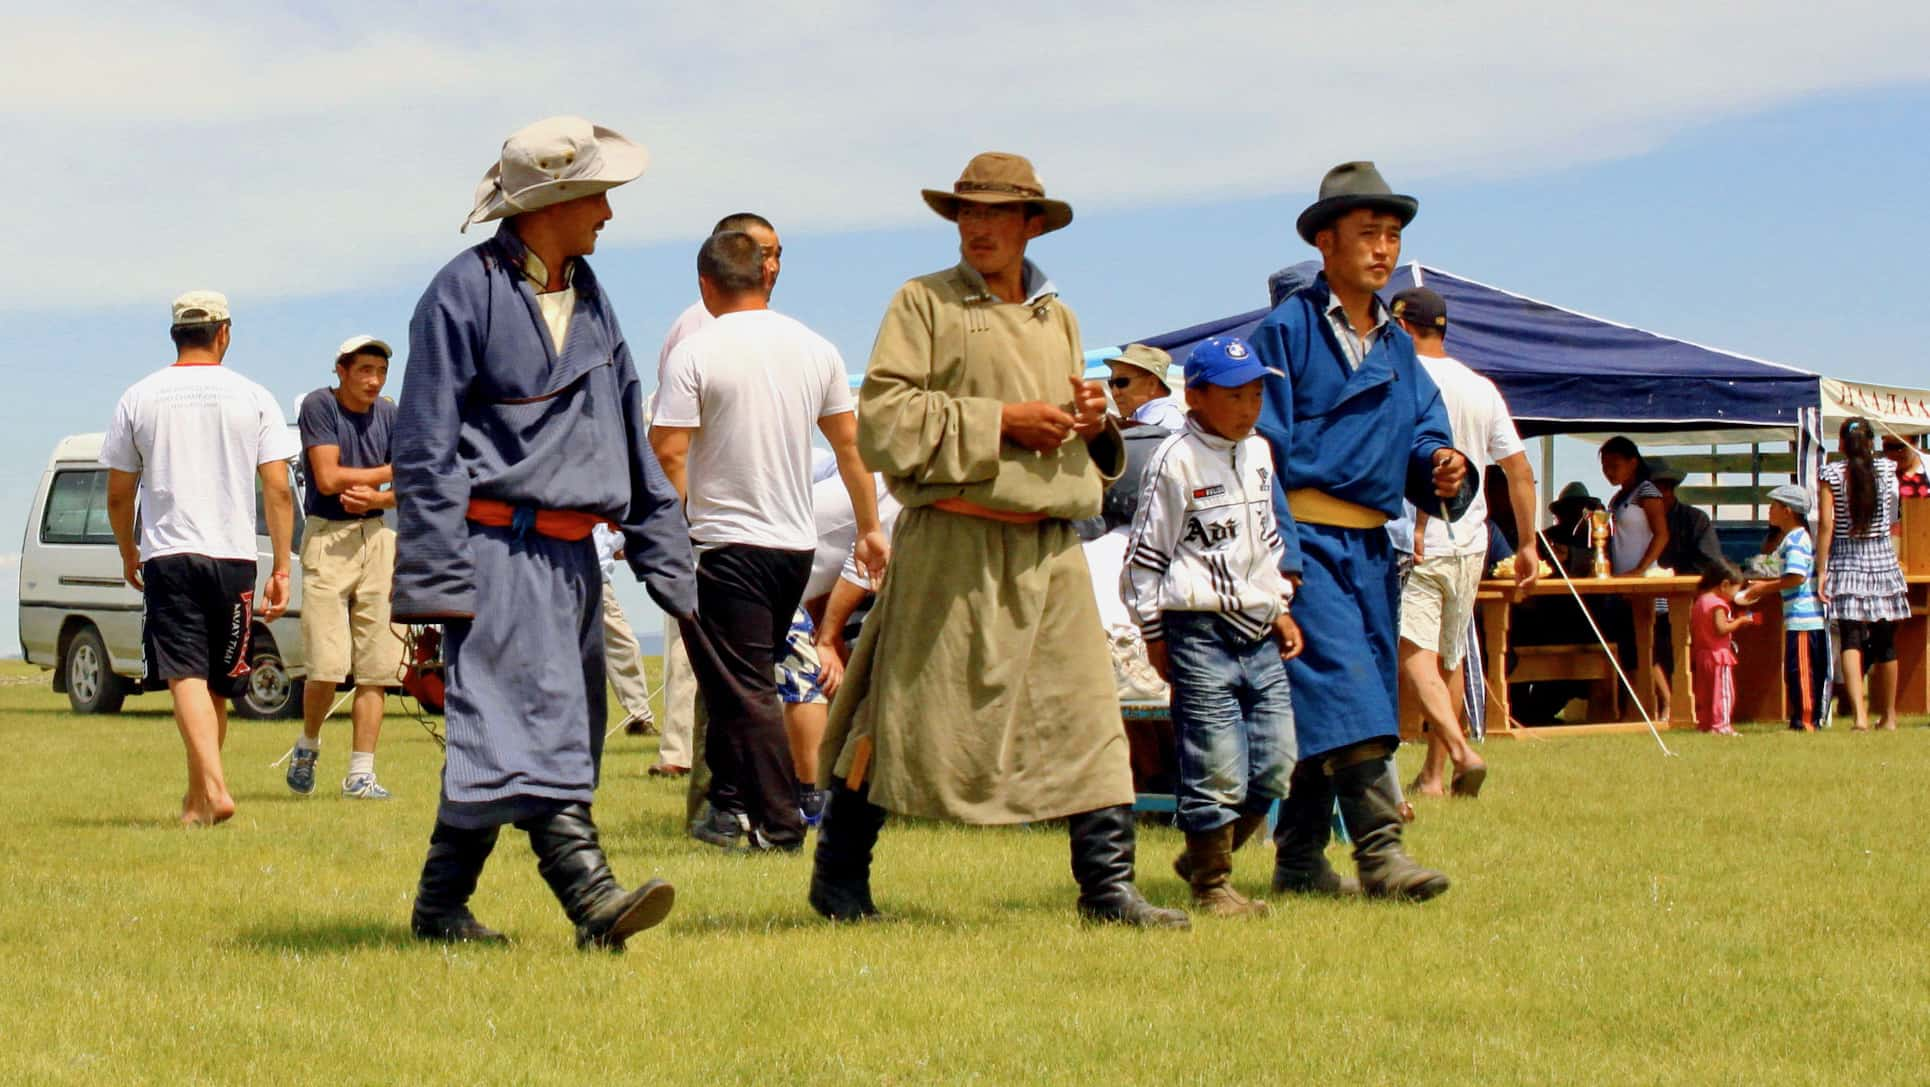 Mongolians wearing deel.